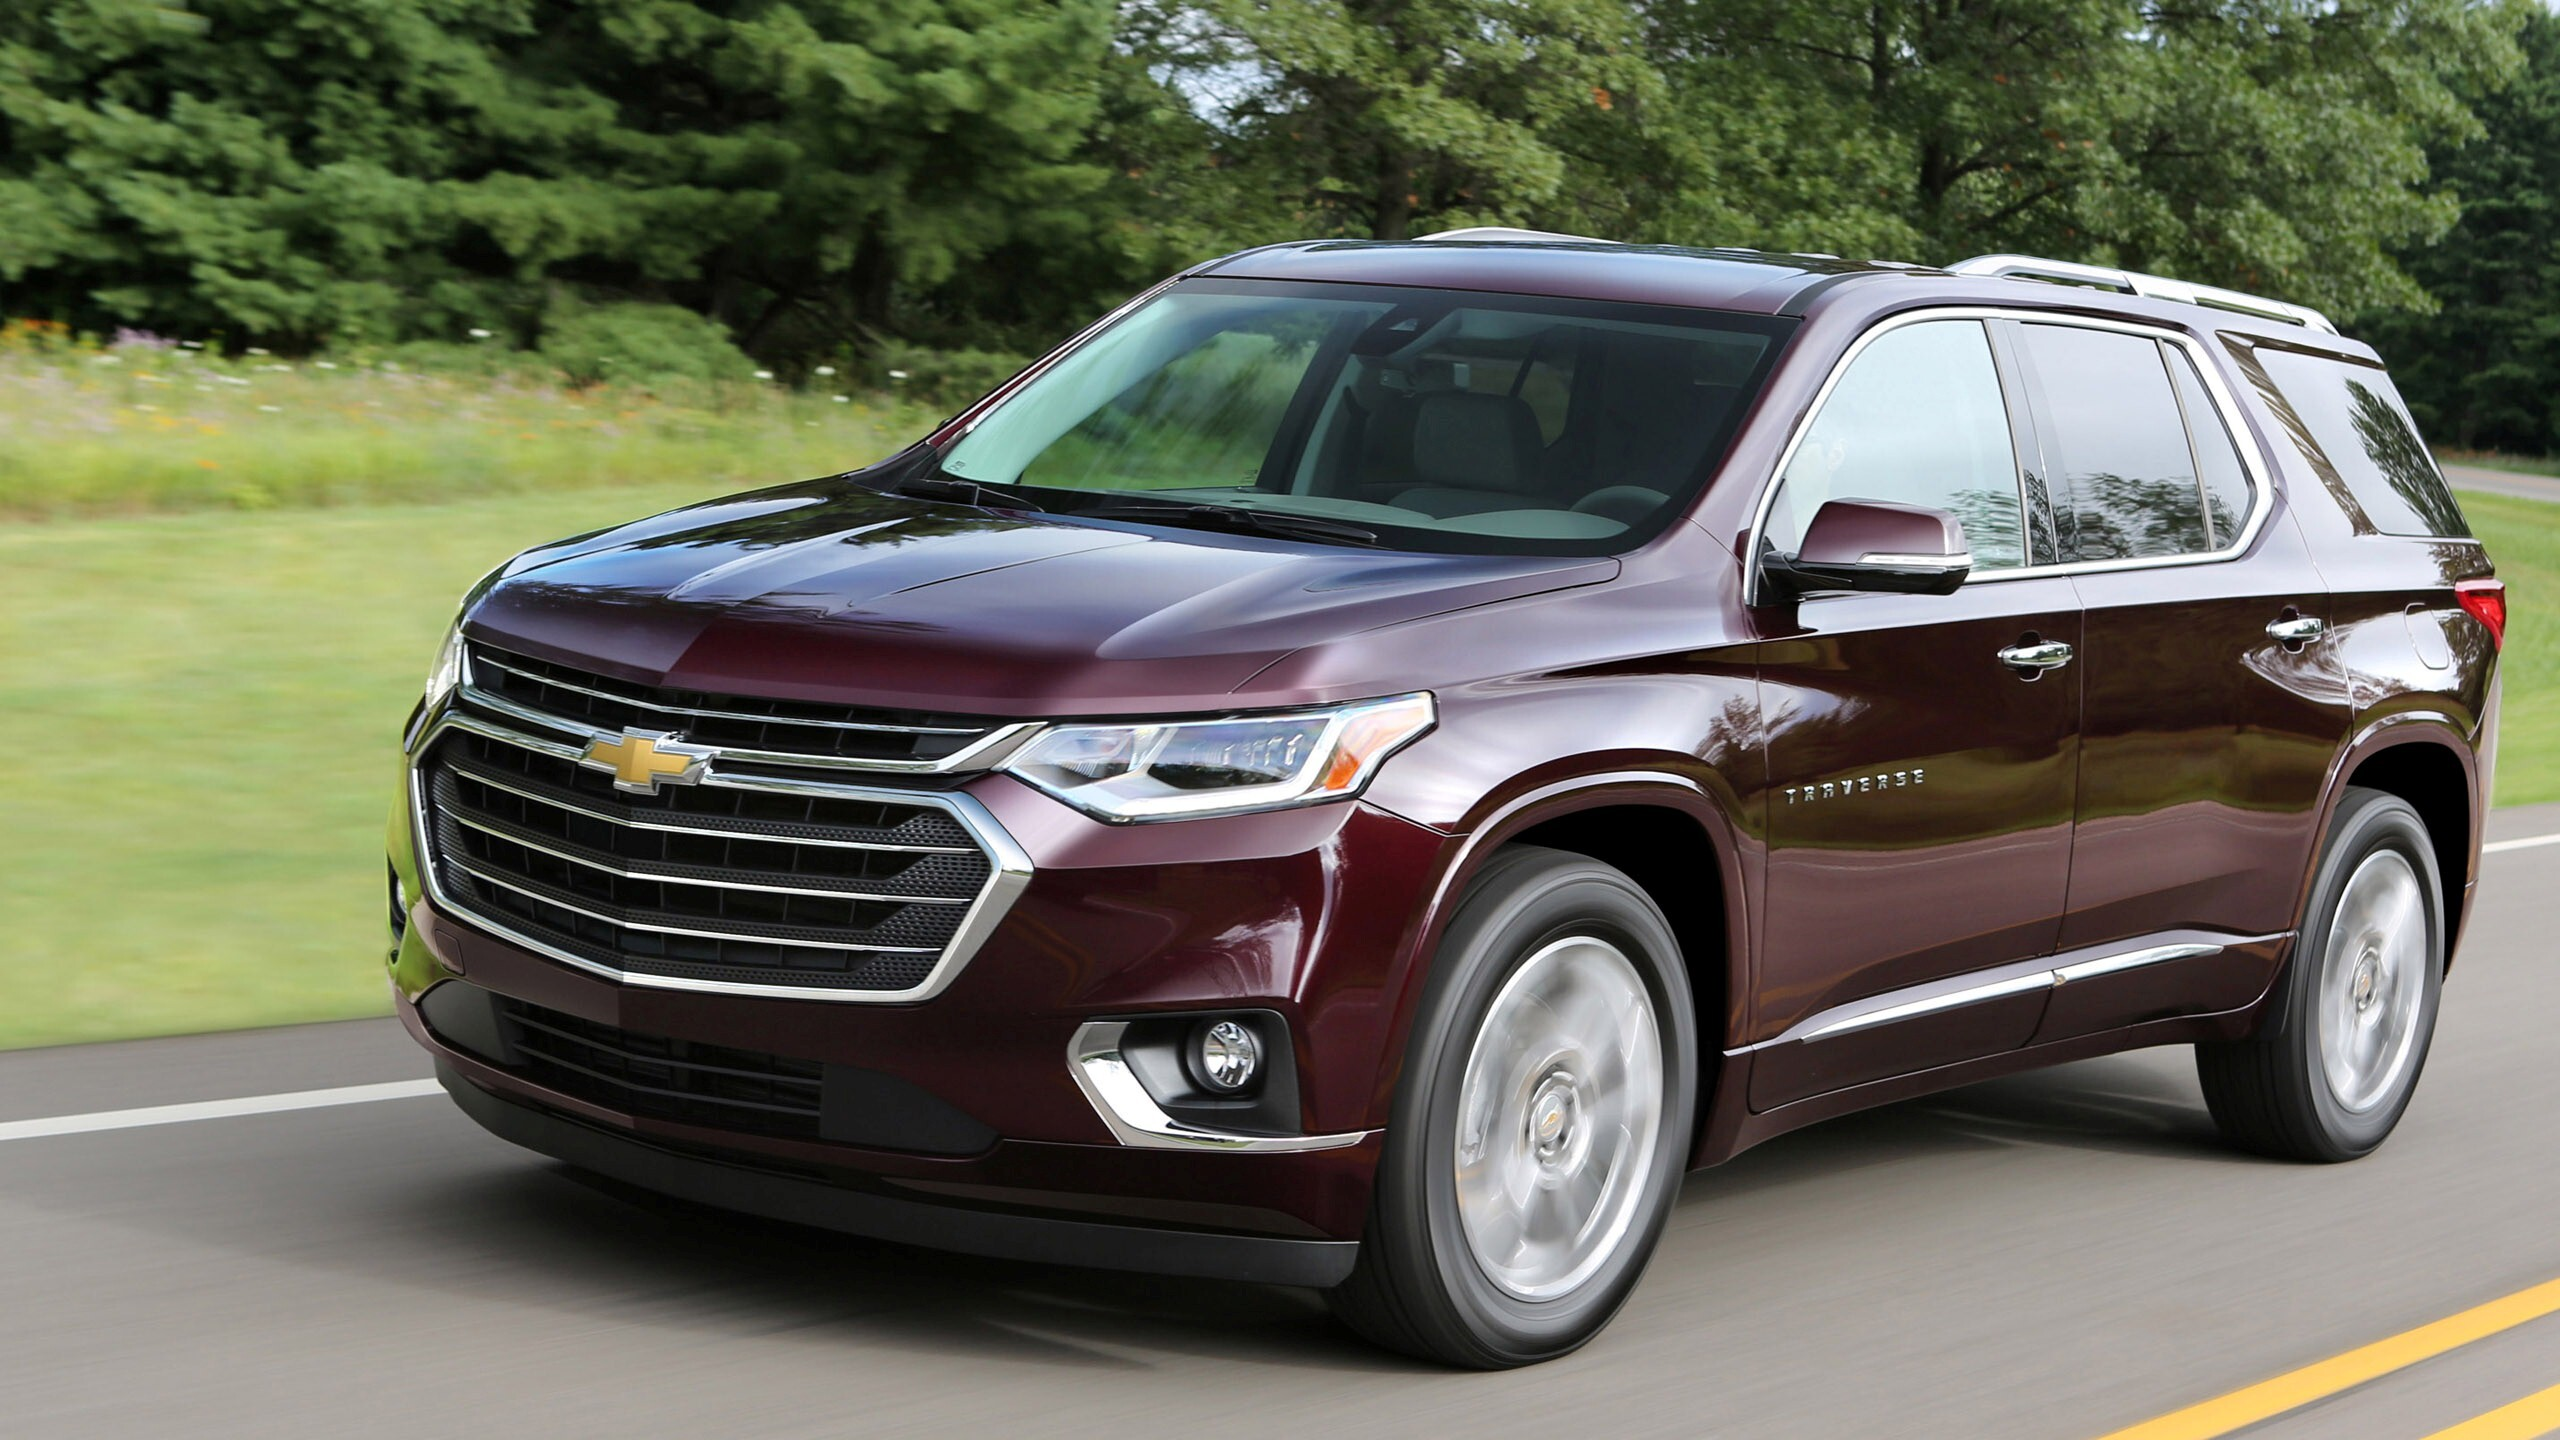 new 2018 chevrolet traverse suv car hd wallpapers. Black Bedroom Furniture Sets. Home Design Ideas